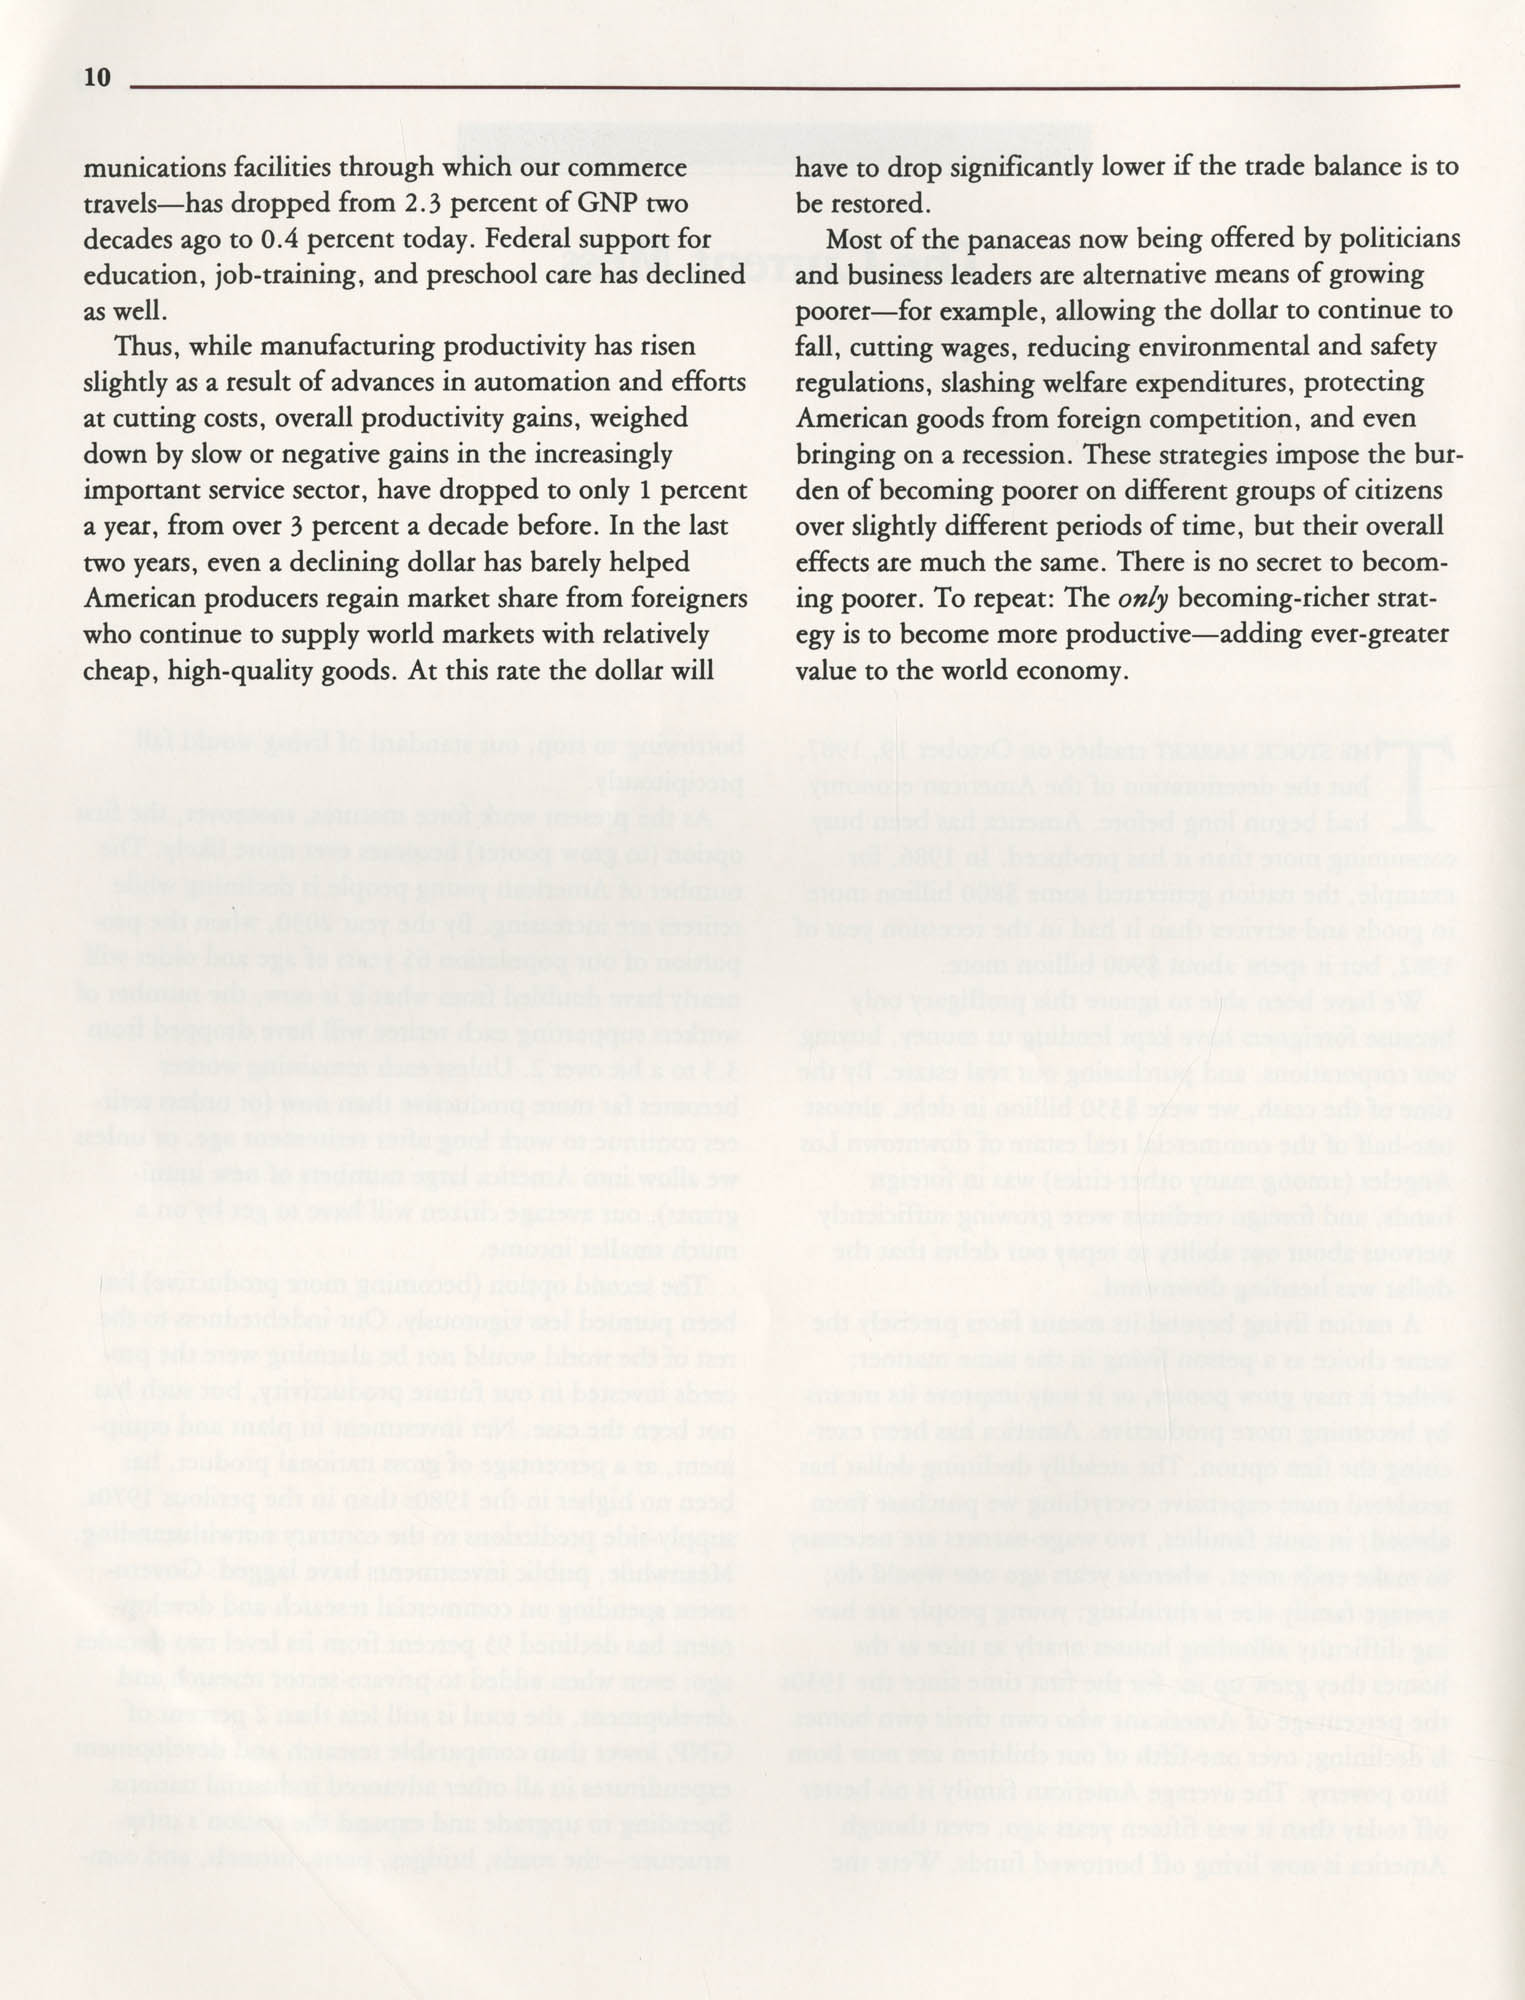 Education and the Next Economy, Page 10